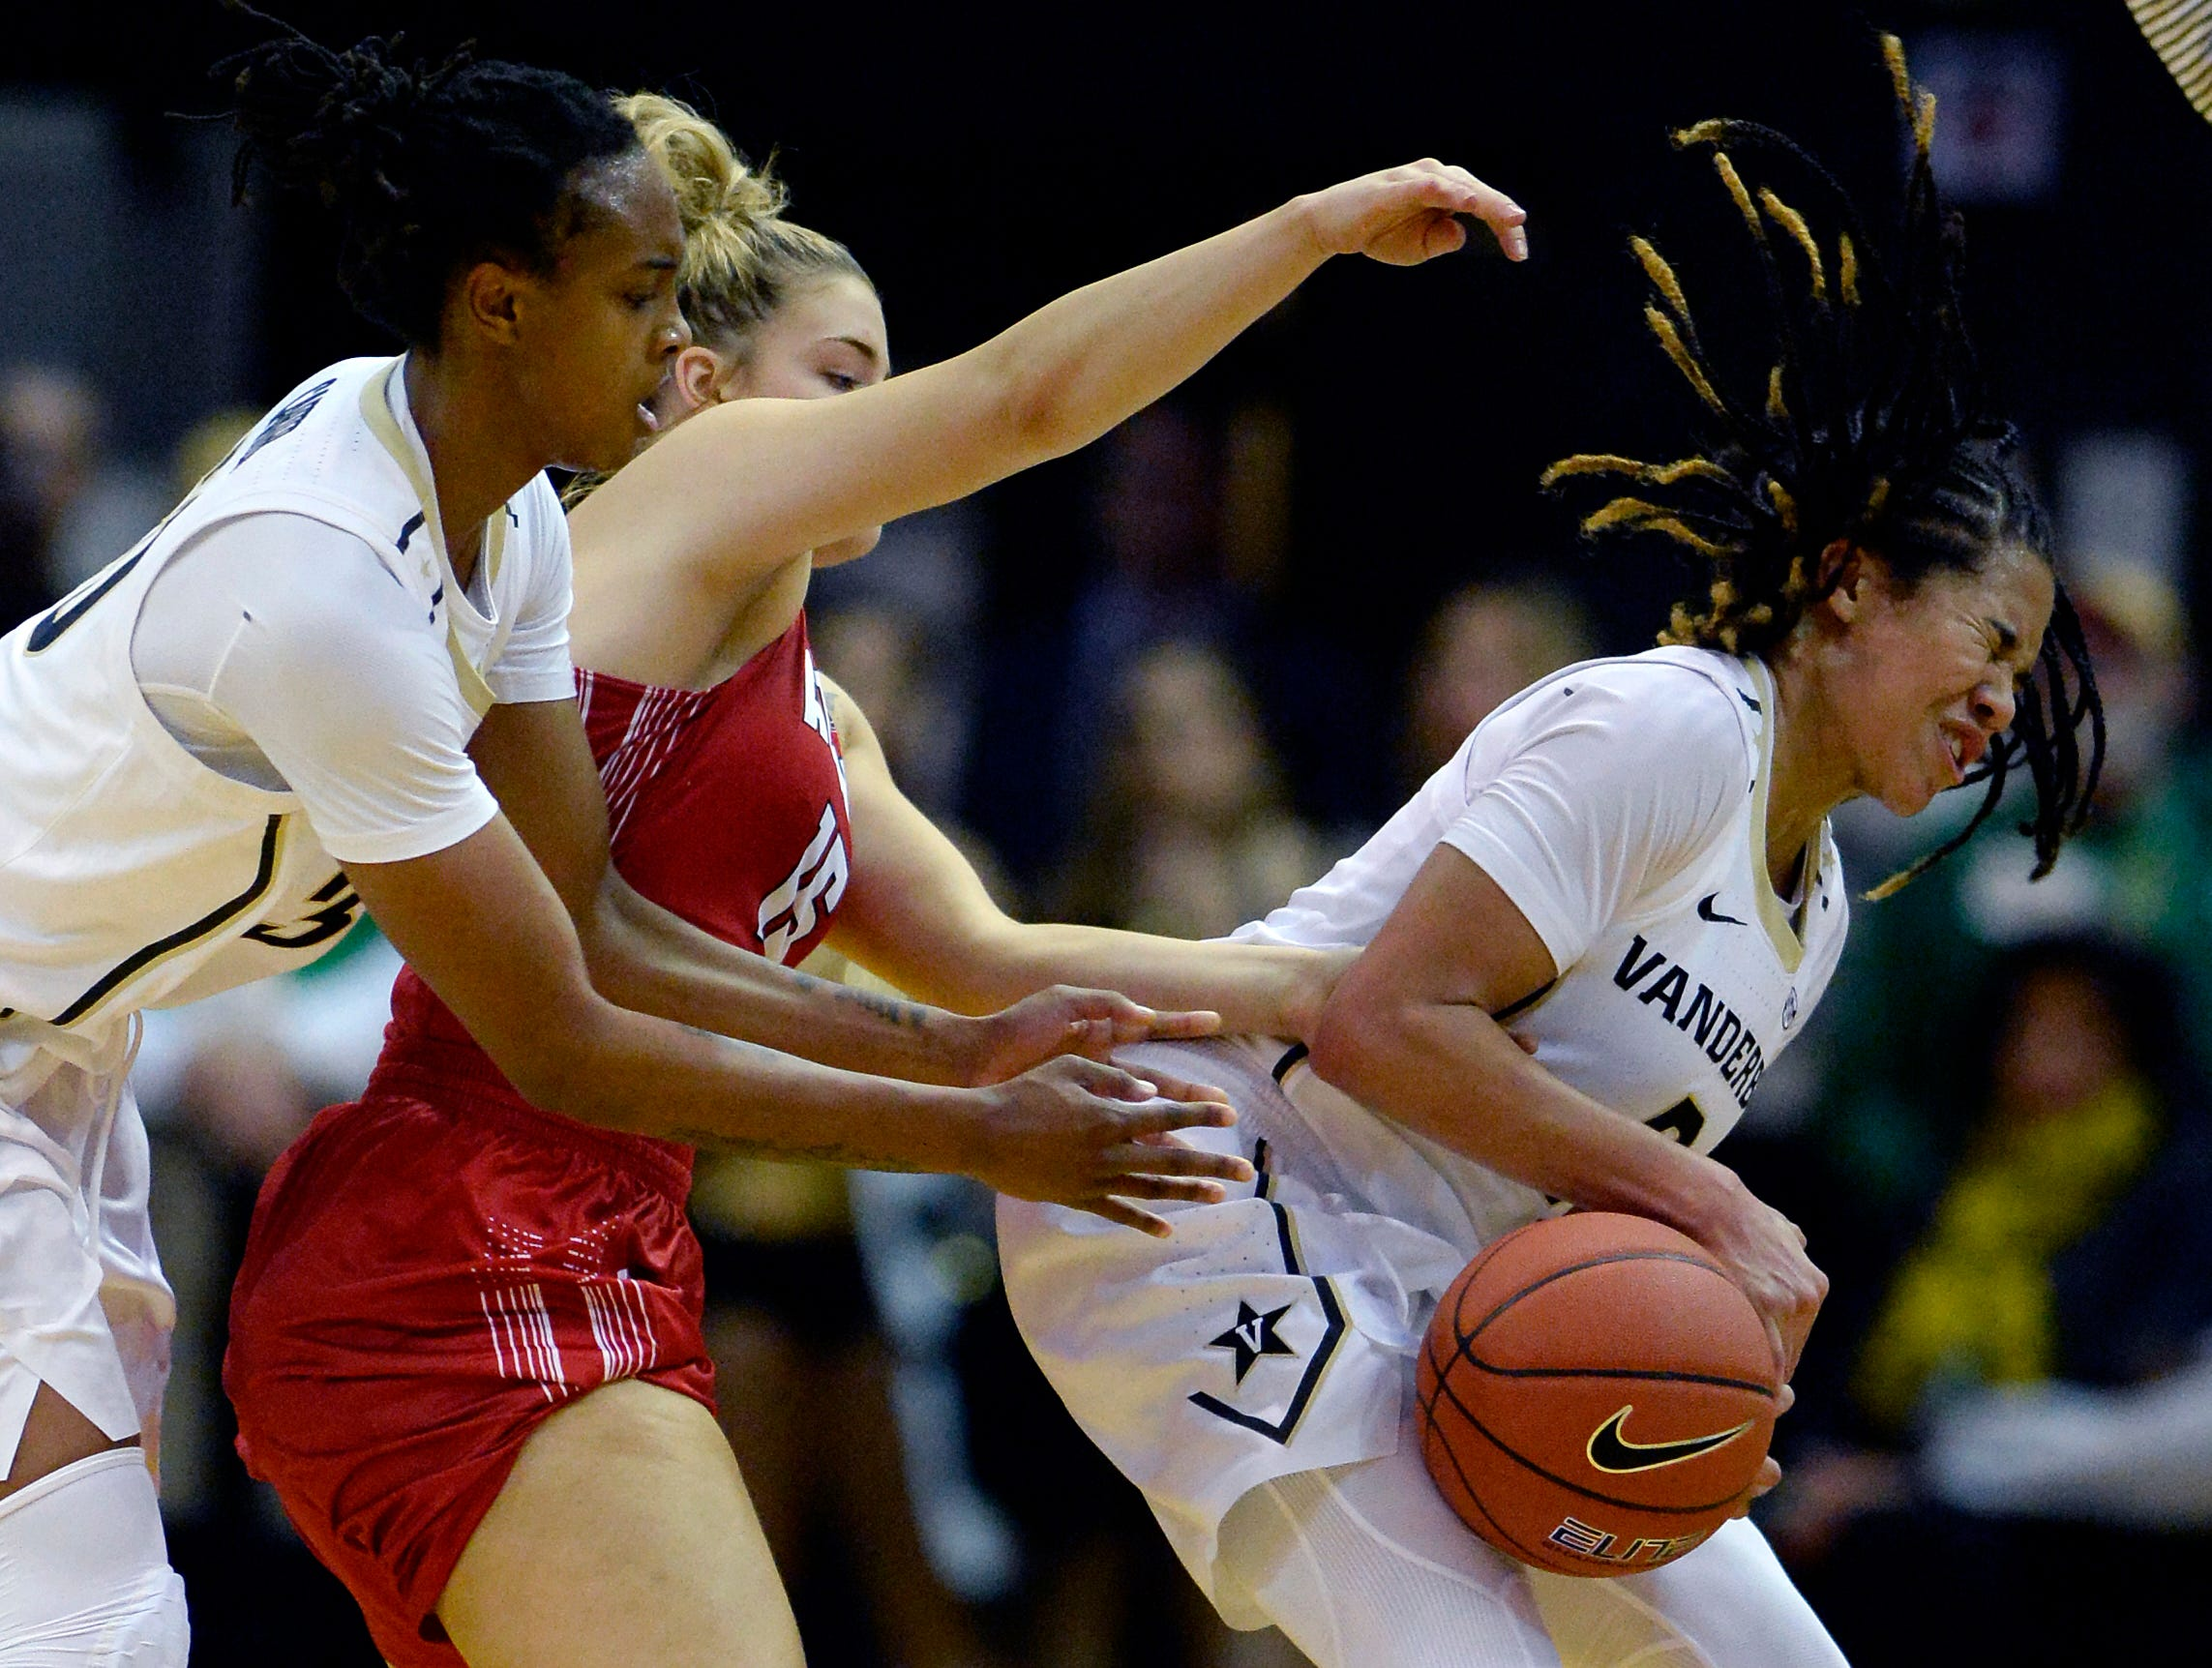 Vanderbilt guard Chelsie Hall, right, is fouled by Austin Peay guard Kasey Kidwell (15) during the second half of an NCAA college basketball game Monday, Nov. 12, 2018, in Nashville, Tenn. Vanderbilt won 99-70.